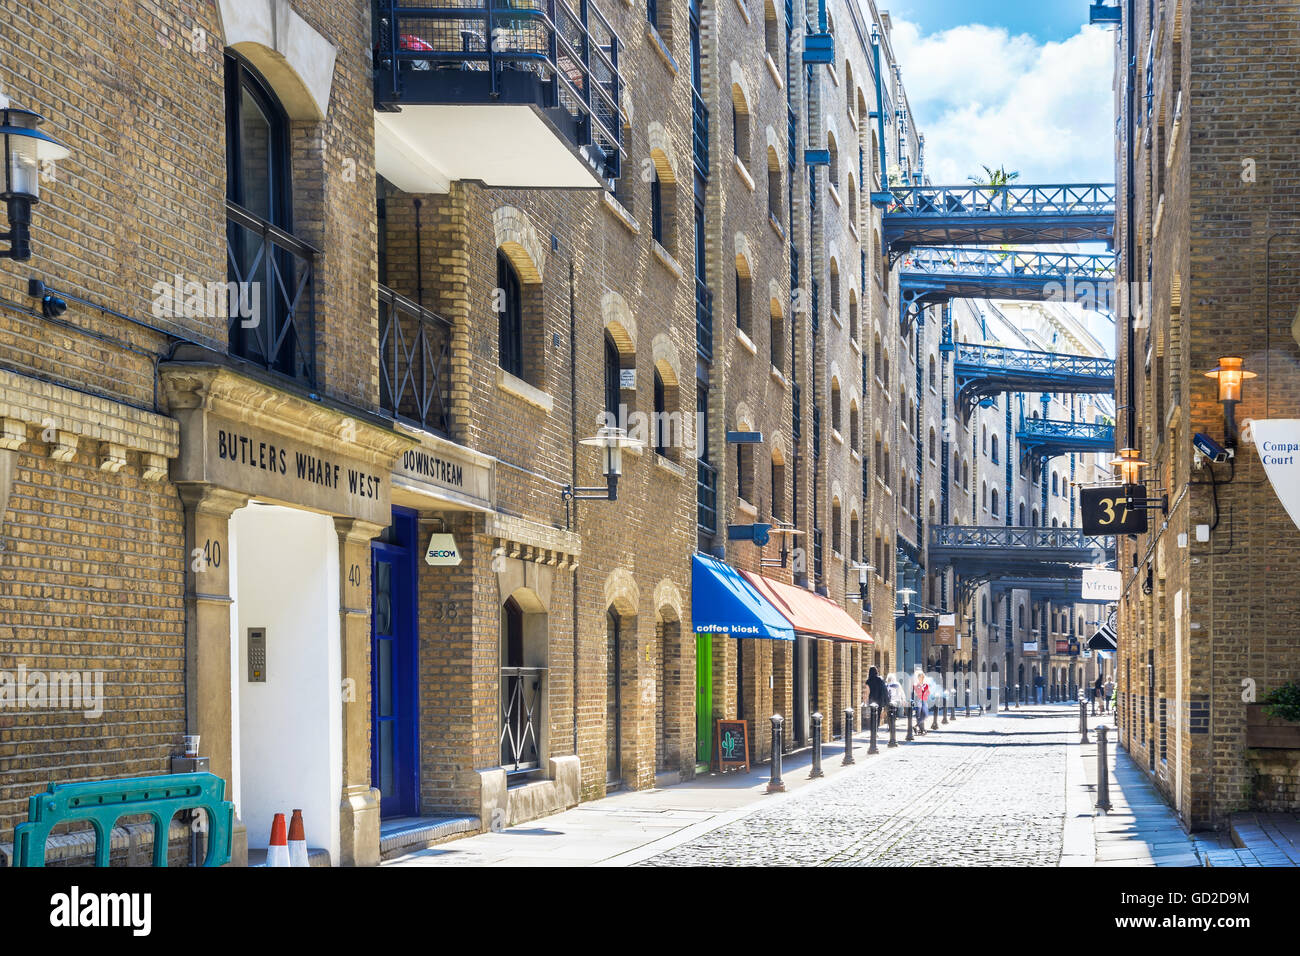 London, UK - June 24, 2017 - Street view of Shad Thames, a historic riverside street next to Tower Bridge in Bermondsey - Stock Image